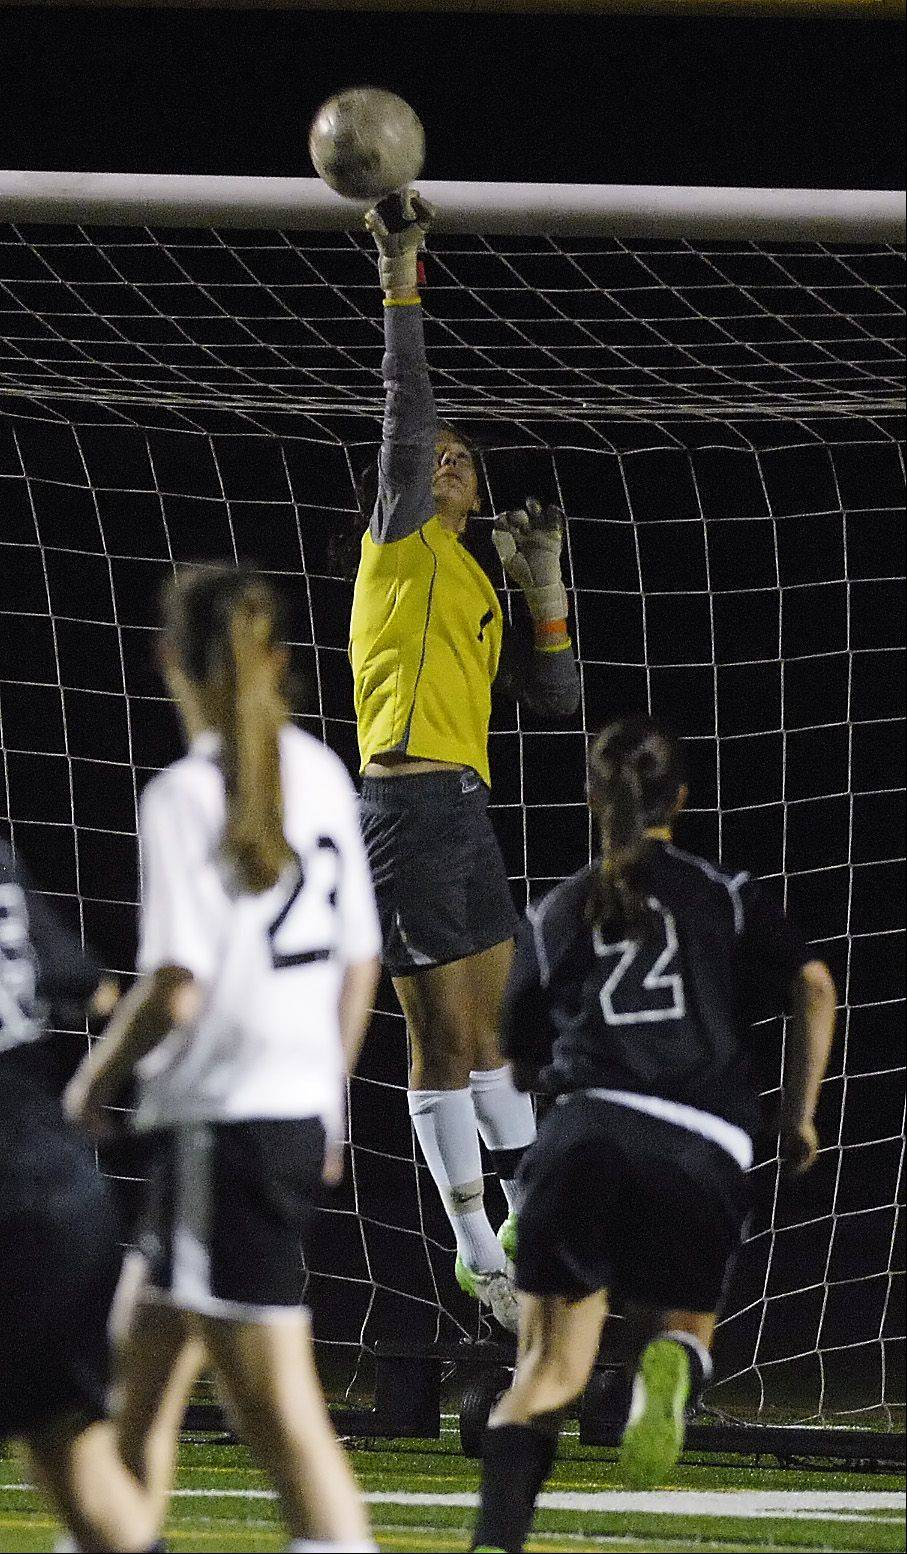 Goalie Abigail Fuster of Wheaton Warrenville South blocks a shot on goal in the final seconds of her teams 1-0 win over Glenbard West, in the girls soccer Class 3A York regional semifinals, Wednesday night.